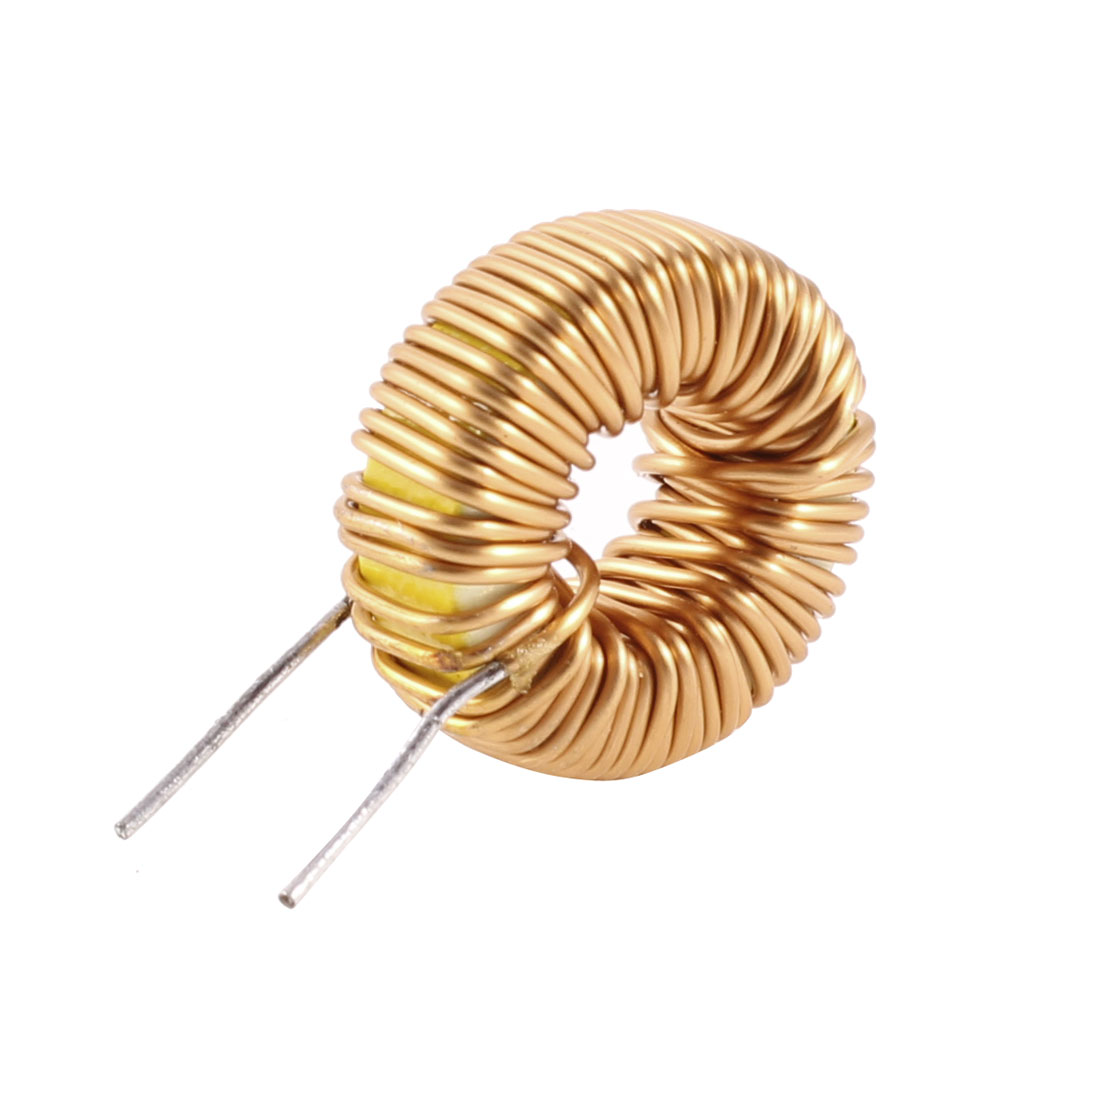 UXCELL Toroid Core Inductor Wire Wind Wound 150Uh 42Mohm 5A Coil(China (Mainland))